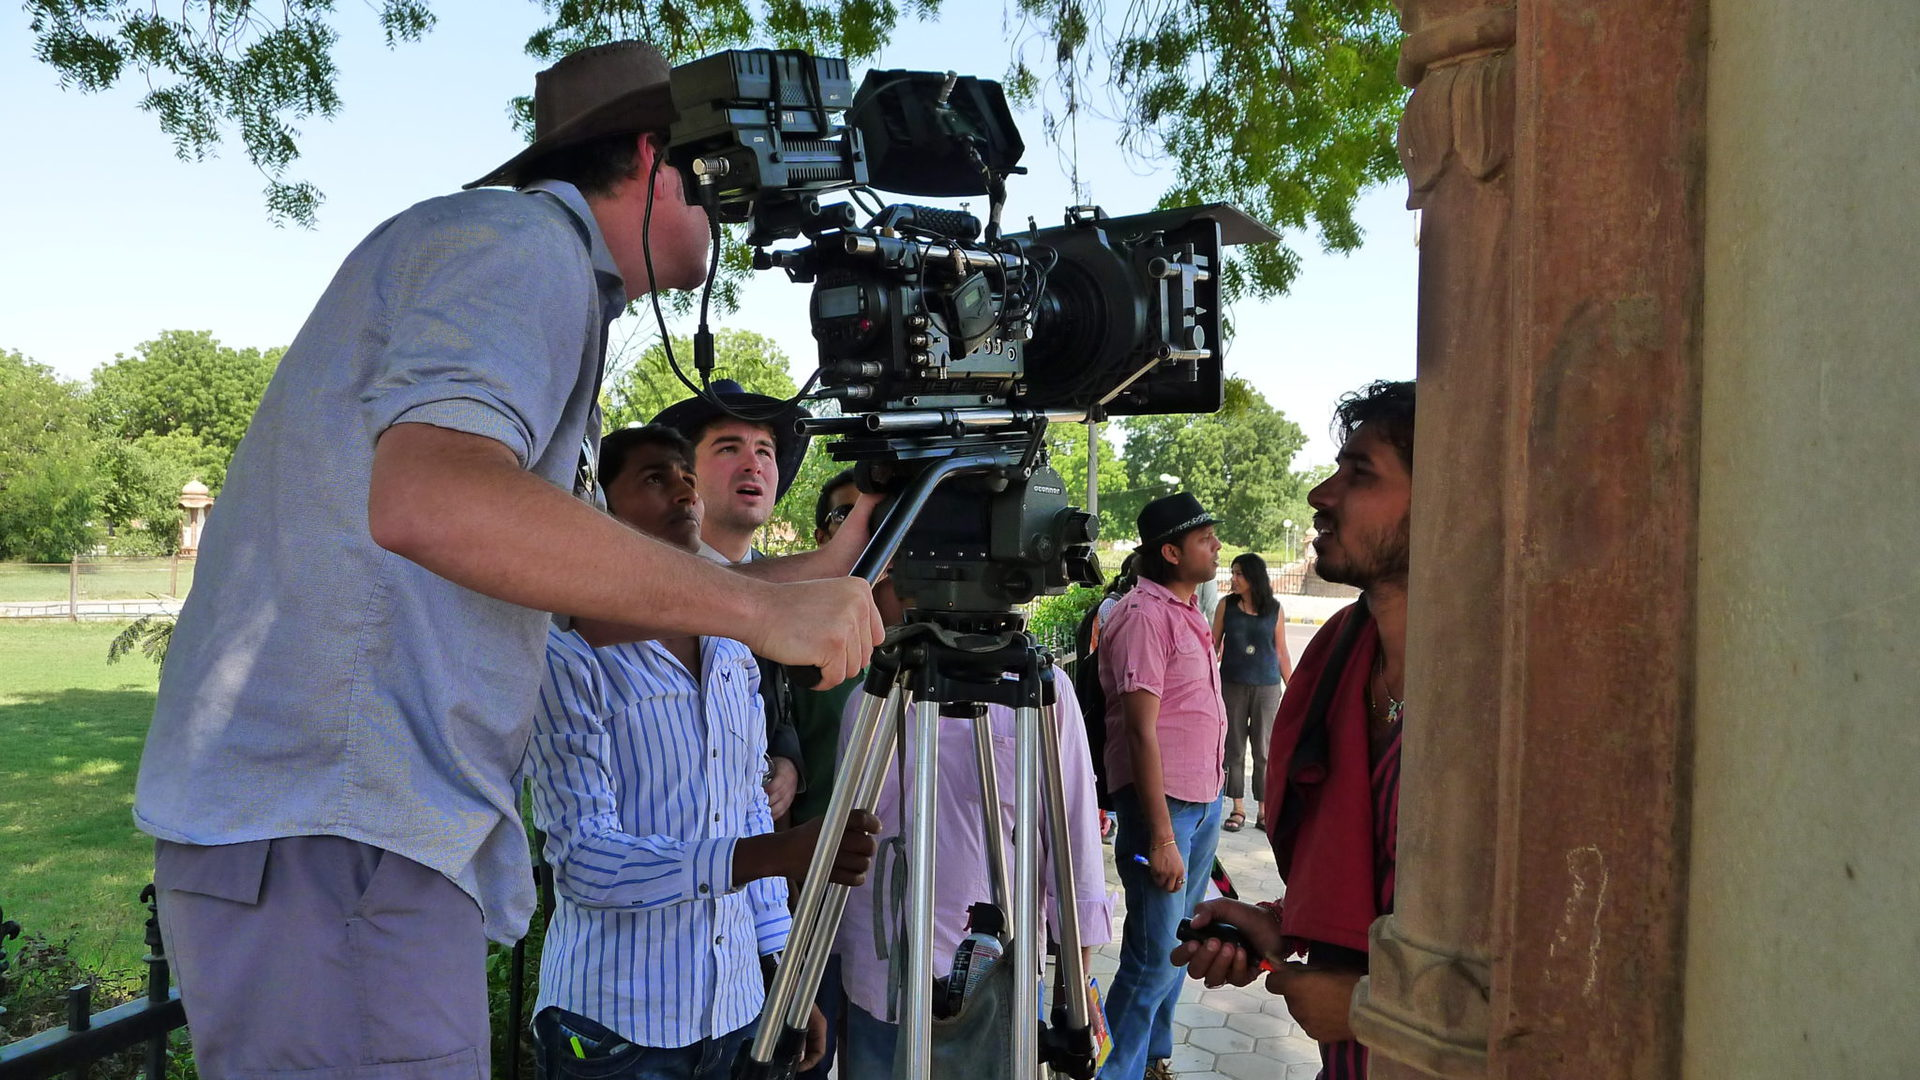 Director-James-Kicklighter-Desires-Of-The-Heart-India-On-Set-Tim_Gill-Rajesh_Rathi